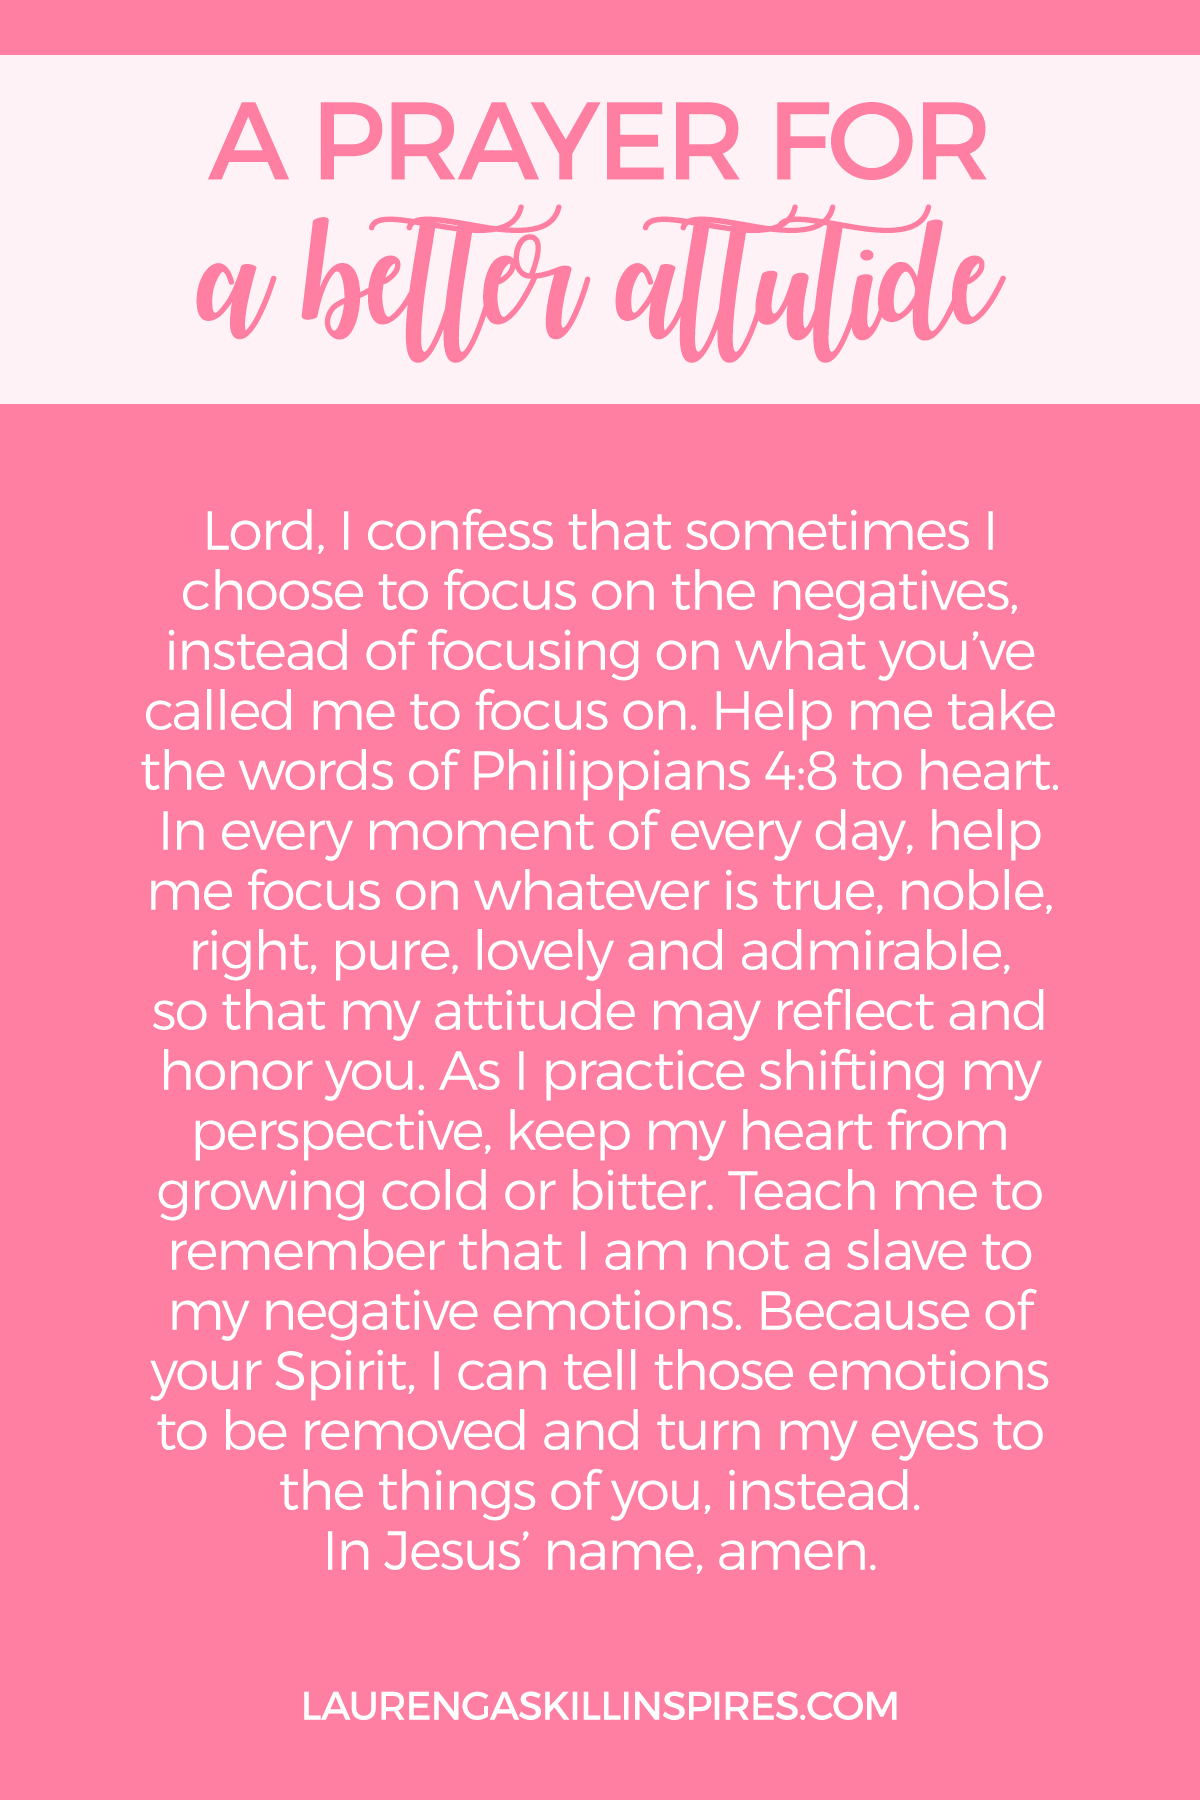 A Prayer for When You Need an Attitude Adjustment